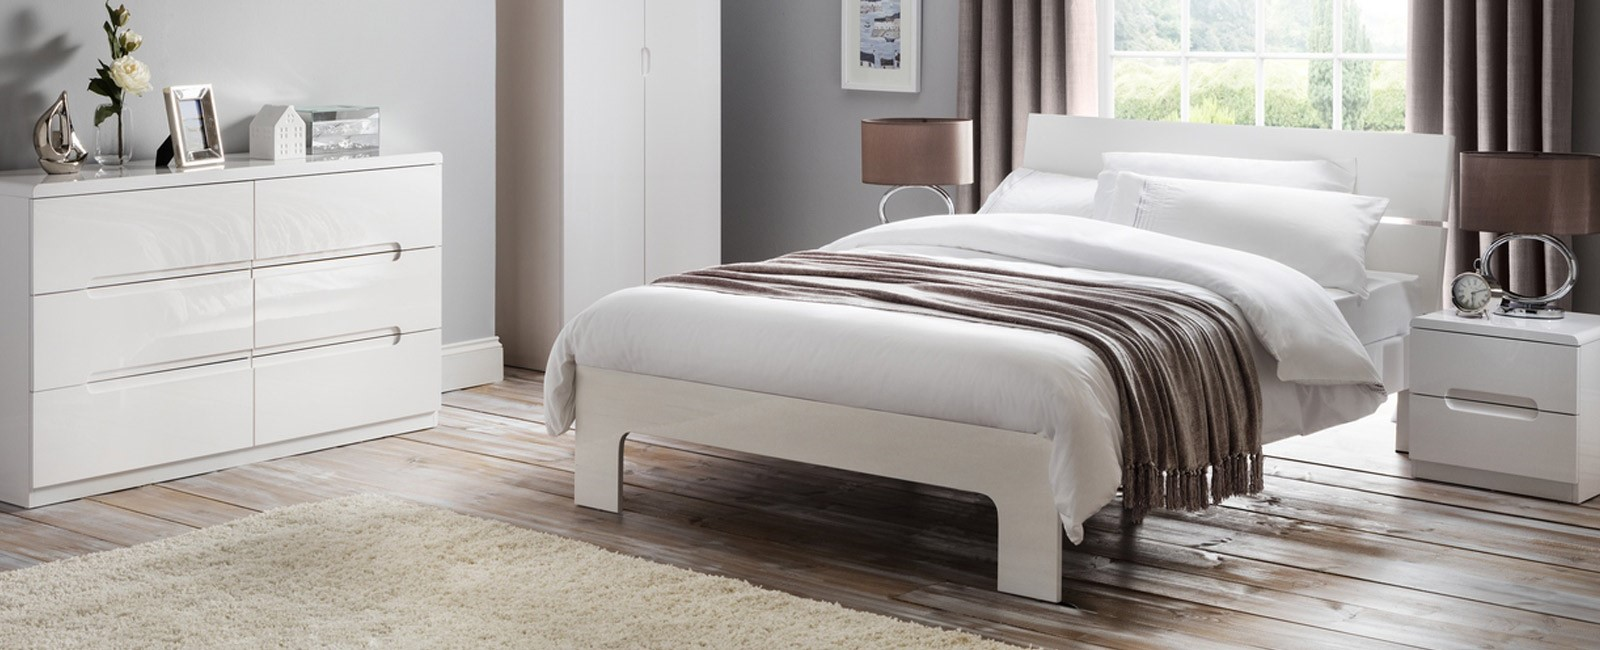 MAKE SLEEP GREAT AGAIN WITH A NEW BED FROM CRAIG'S! GREAT DEALS ALL WEEK OF 26TH JUNE!